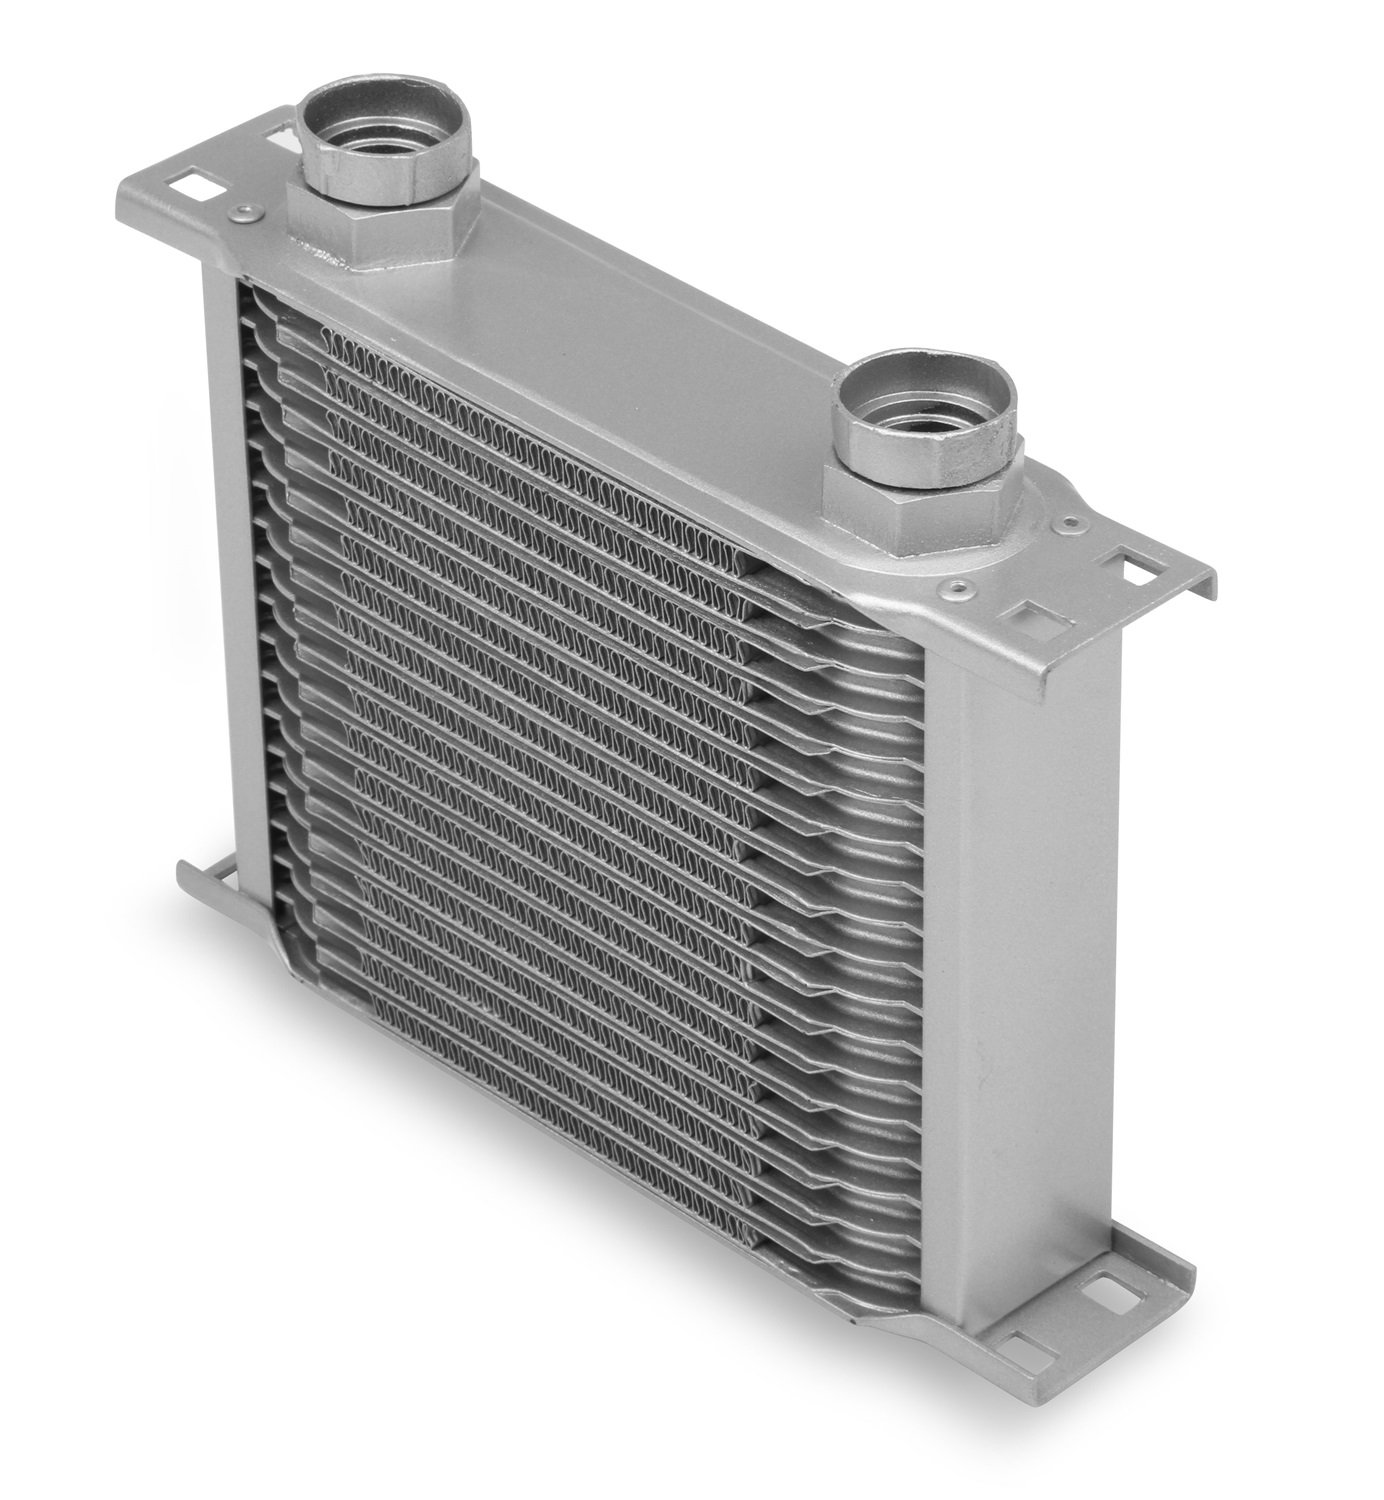 Earl's 21900ERL 19 Row Oil Cooler Core Grey by Earl's Performance (Image #1)